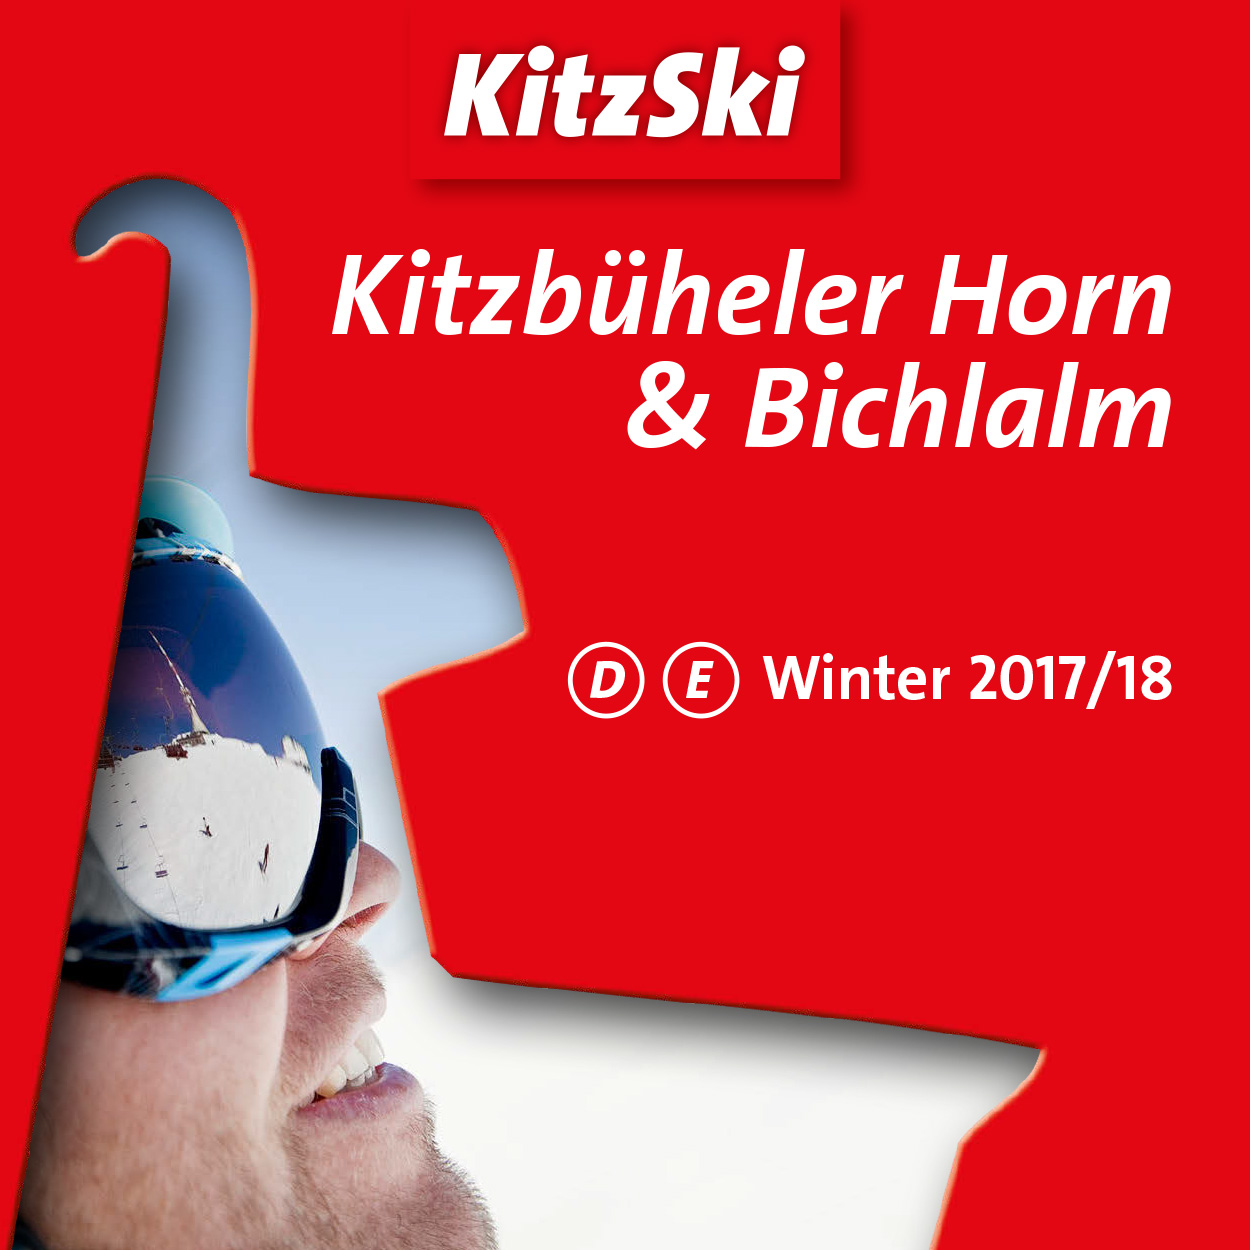 Kitzbüheler Horn & Bichlalm - Deutsch/English